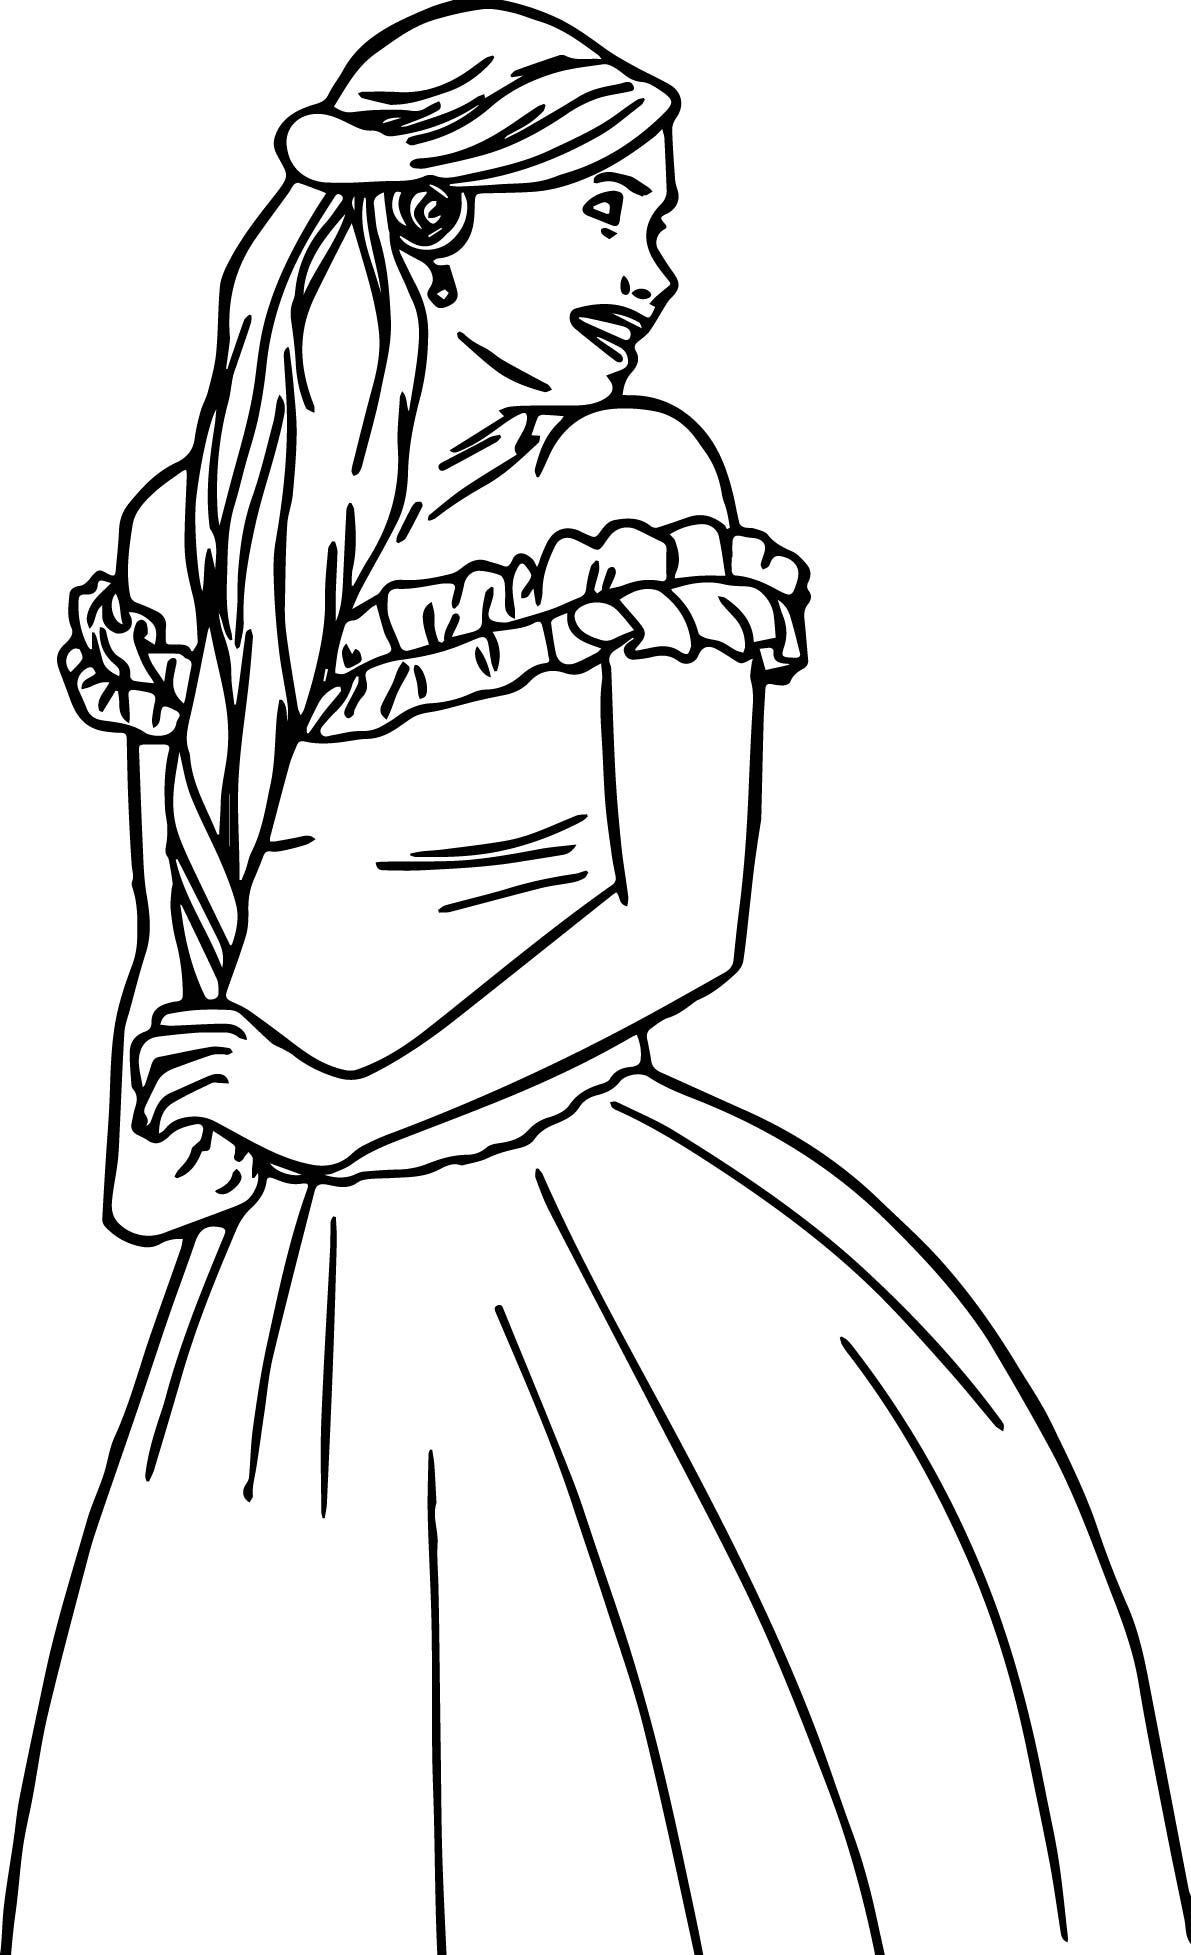 Disney-Enchanted-Happy-Woman-Back-Looking-Coloring-Pages.jpg